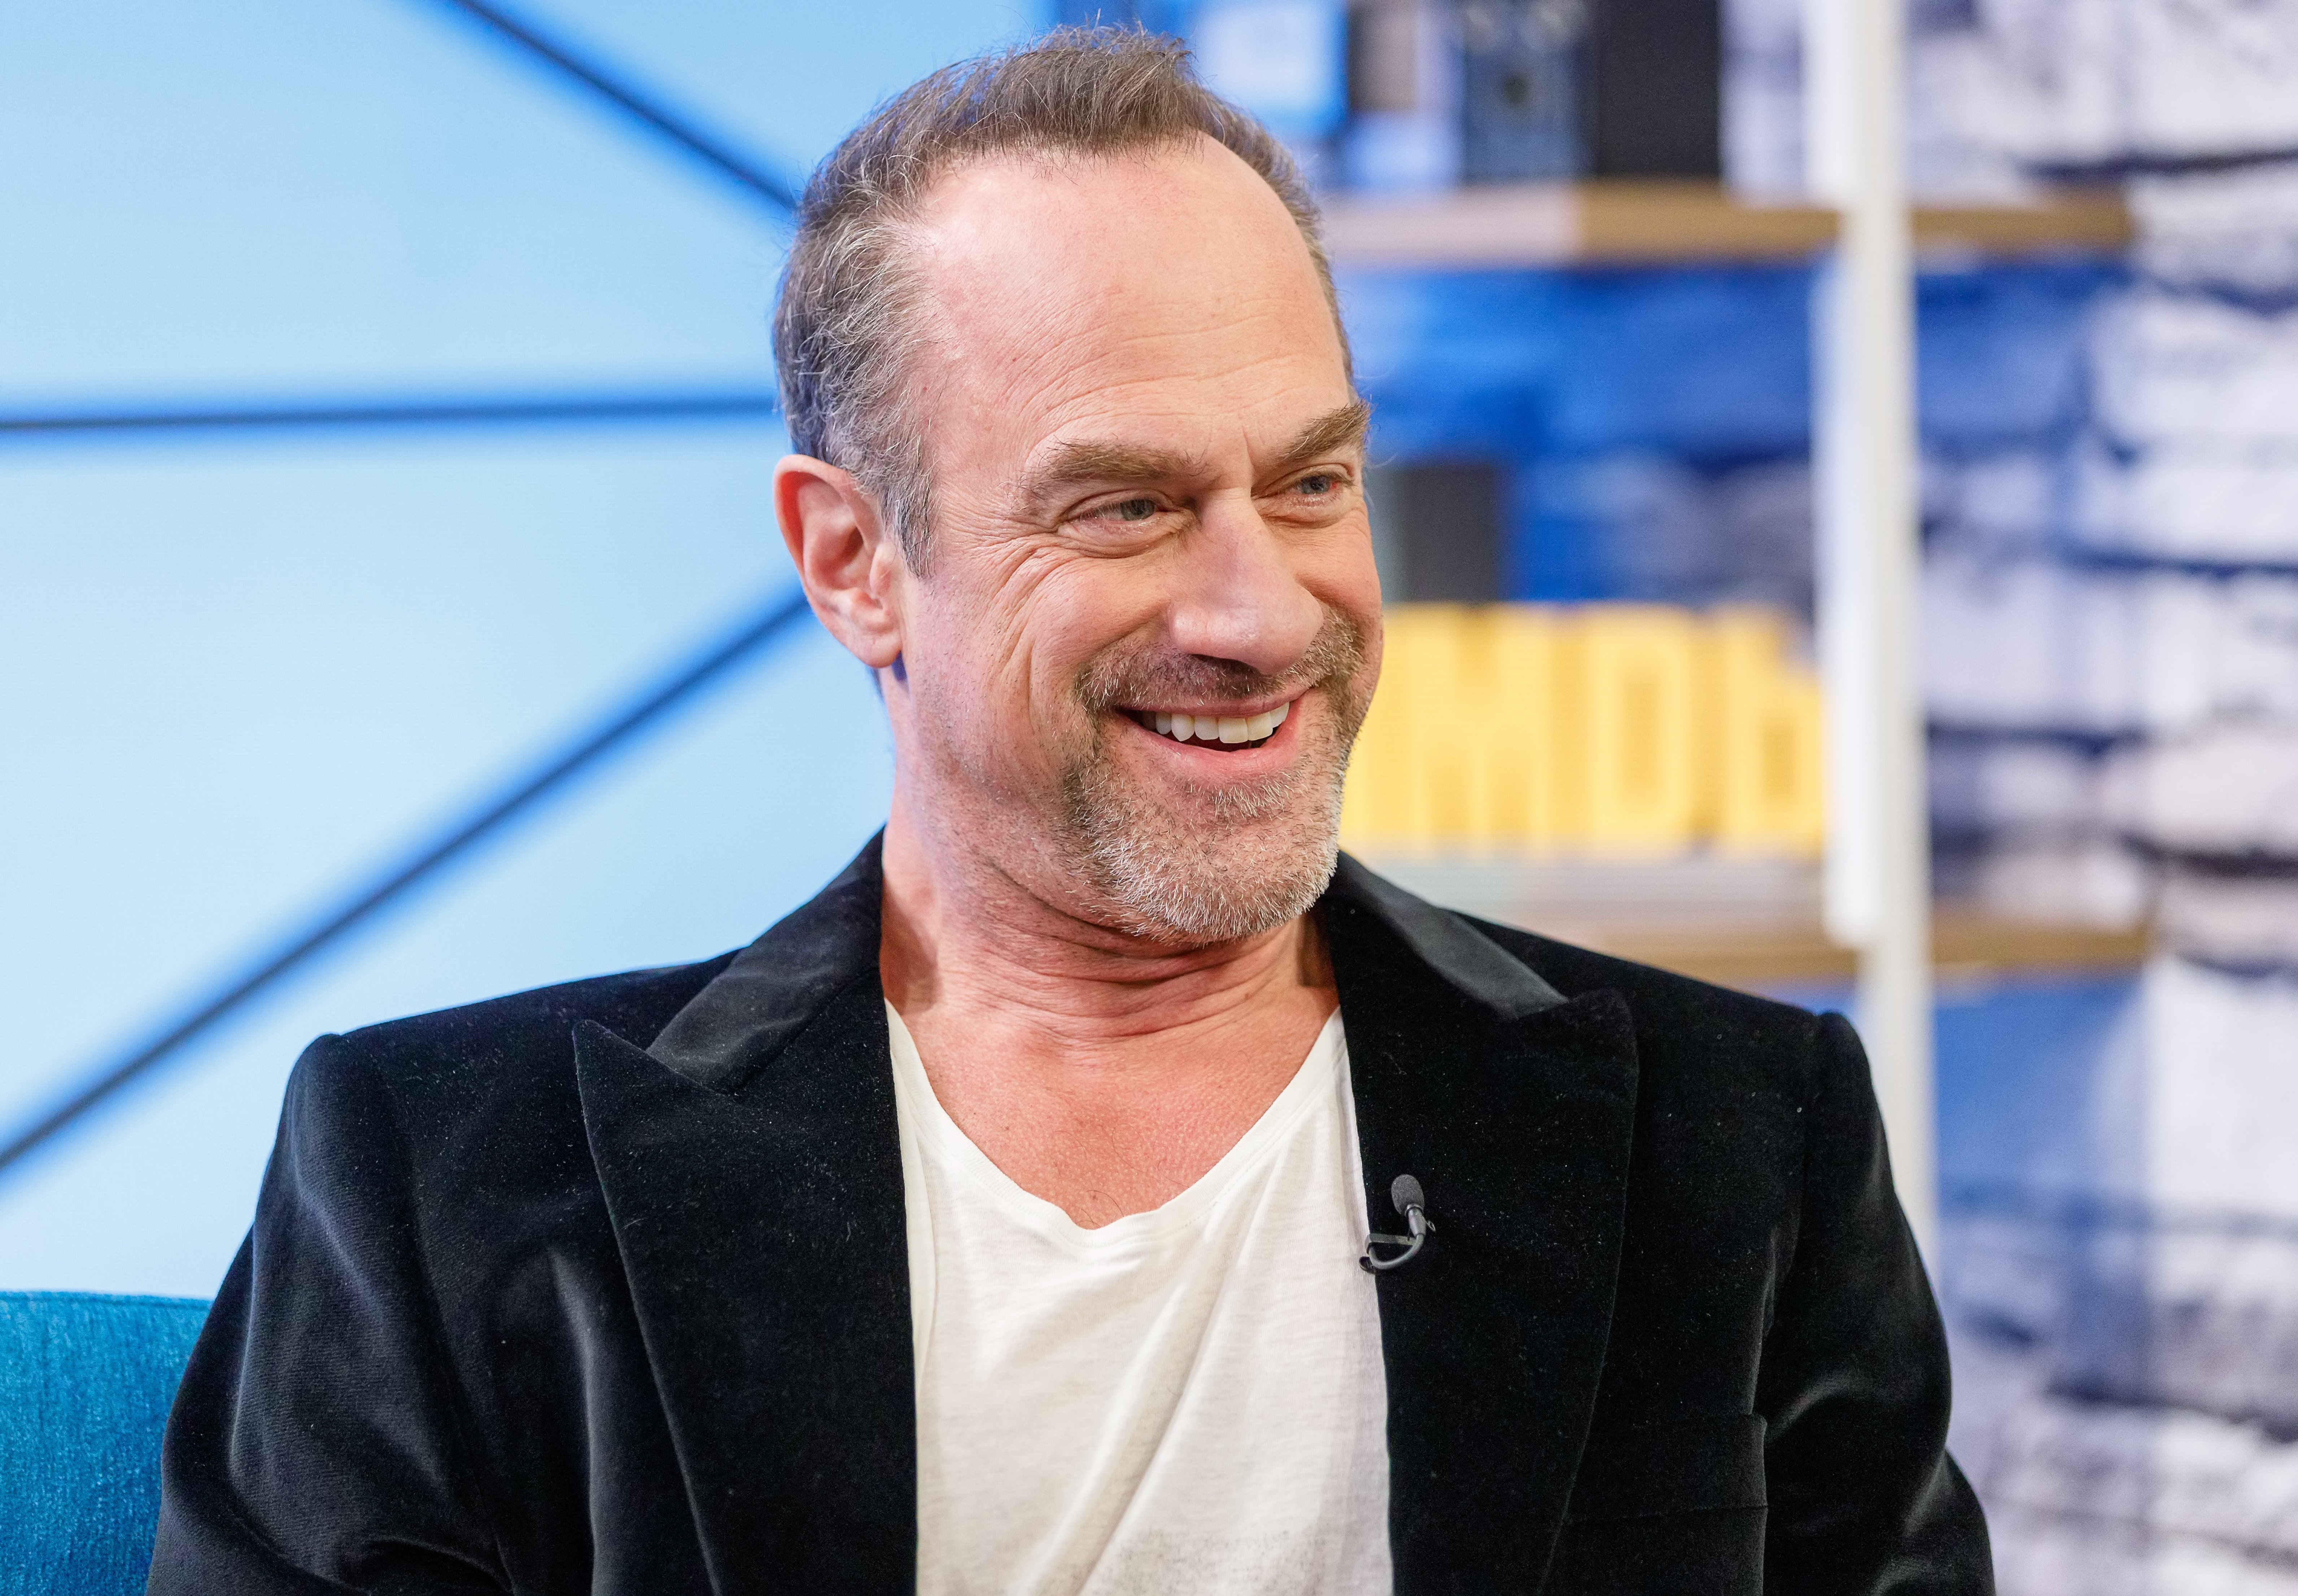 Christopher Meloni visits 'The IMDb Show' on March 26, 2019 in Studio City, California. | Source: Getty Images.